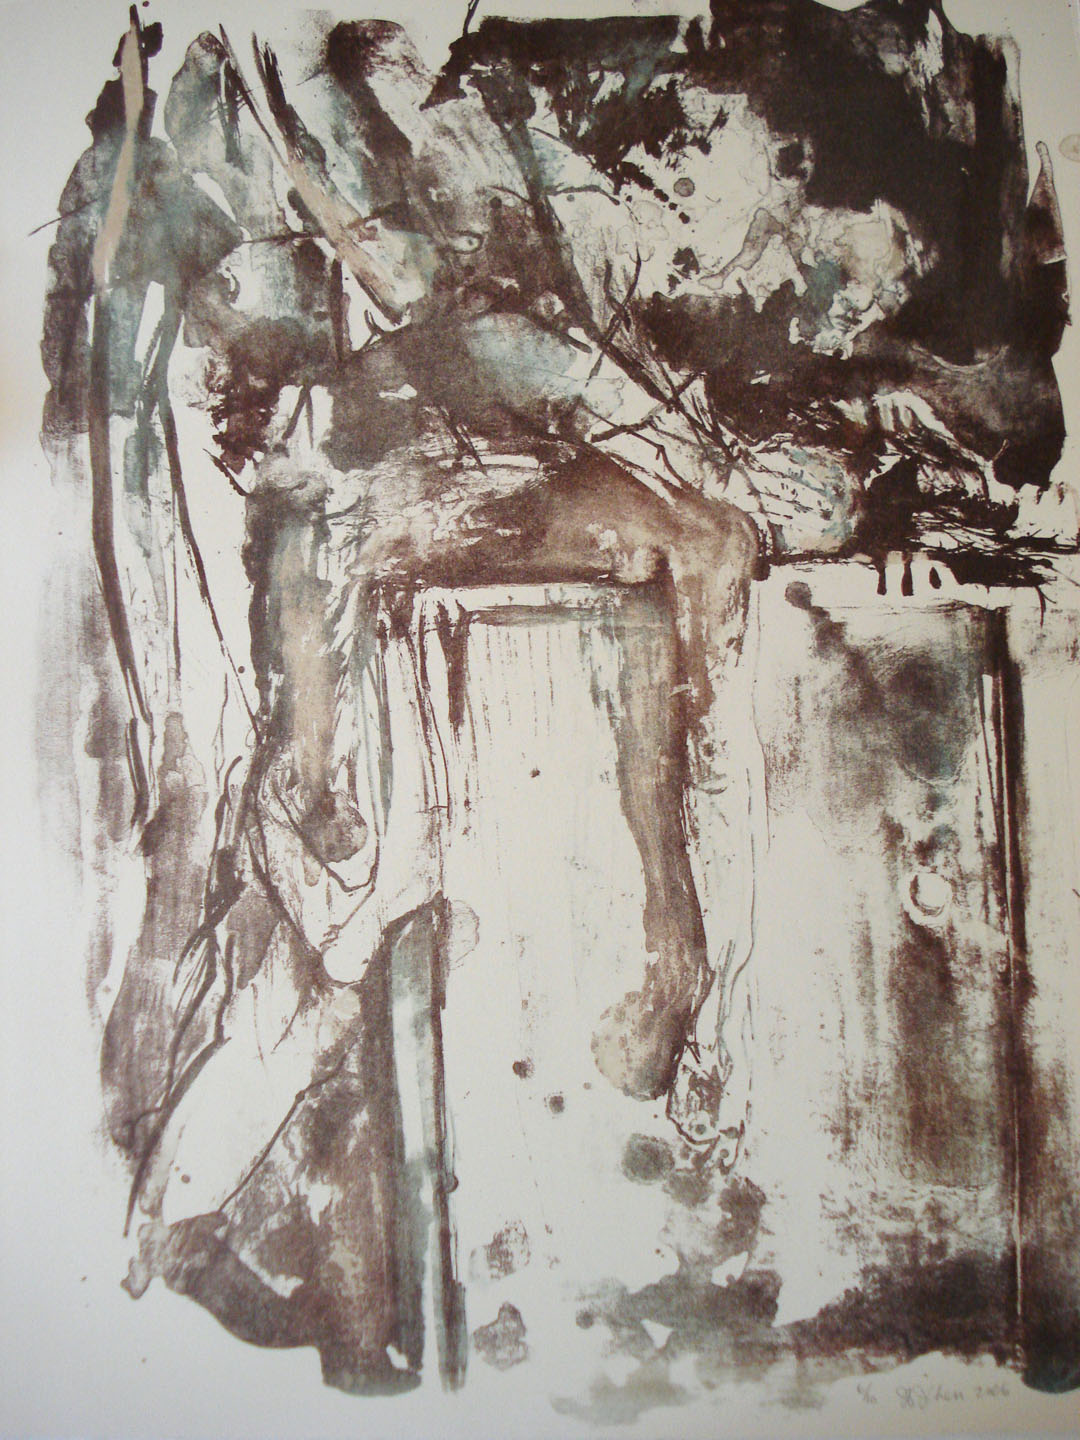 Untitled;2006     Reductive Stone Lithograph, 18 x 15 in